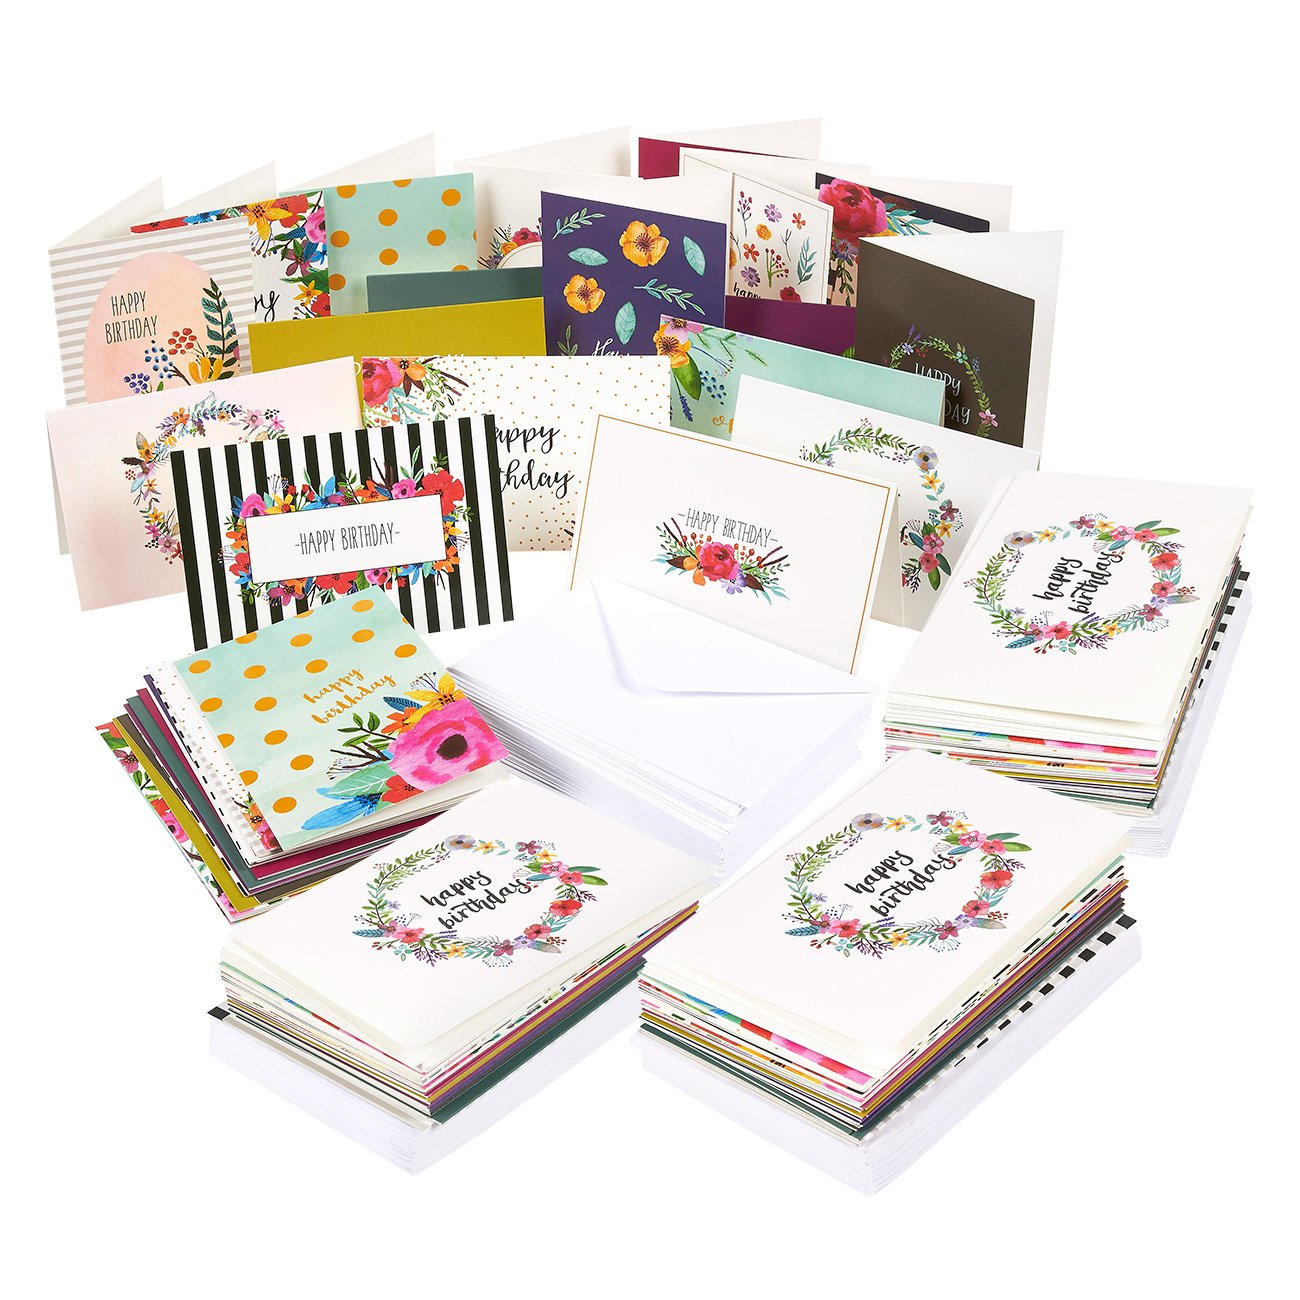 Birthday Card - 144-Pack Birthday Cards Box Set, Happy Birthday Cards - 18 Unique Designs Birthday Card Bulk, Envelopes Included, 4 x 6 Inches